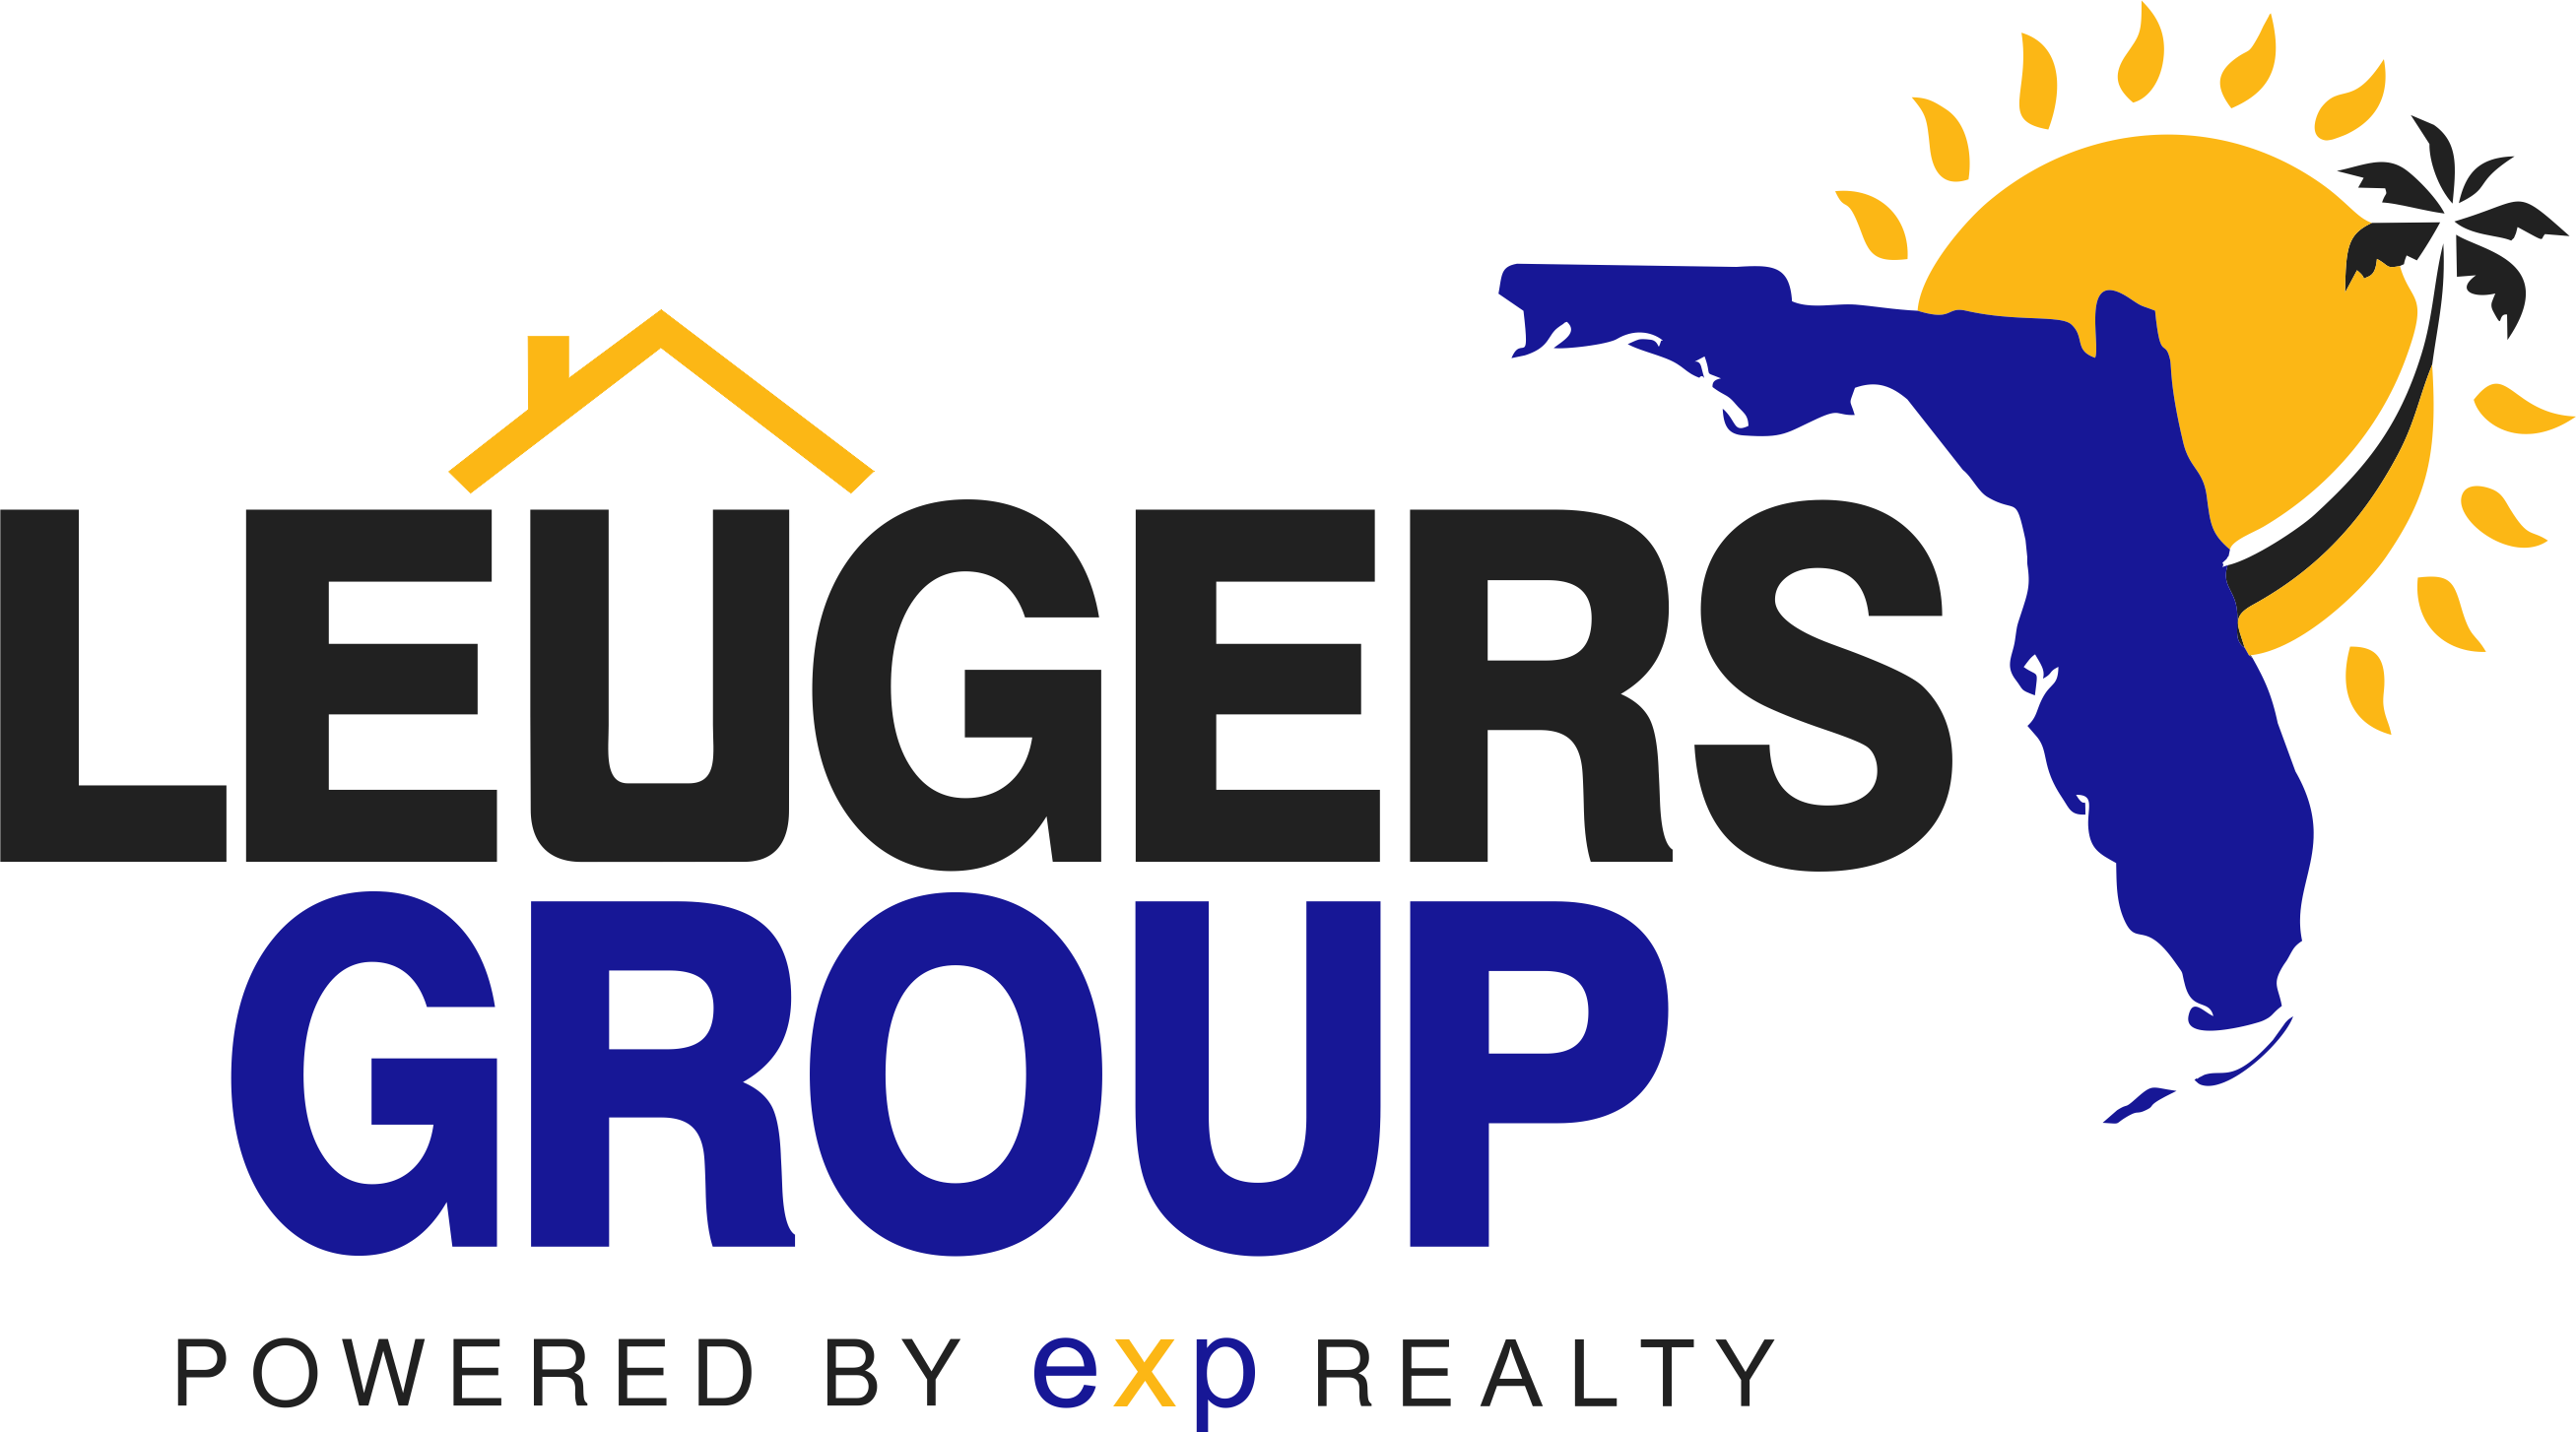 Leugers Group, Brokered by eXp Realty logo